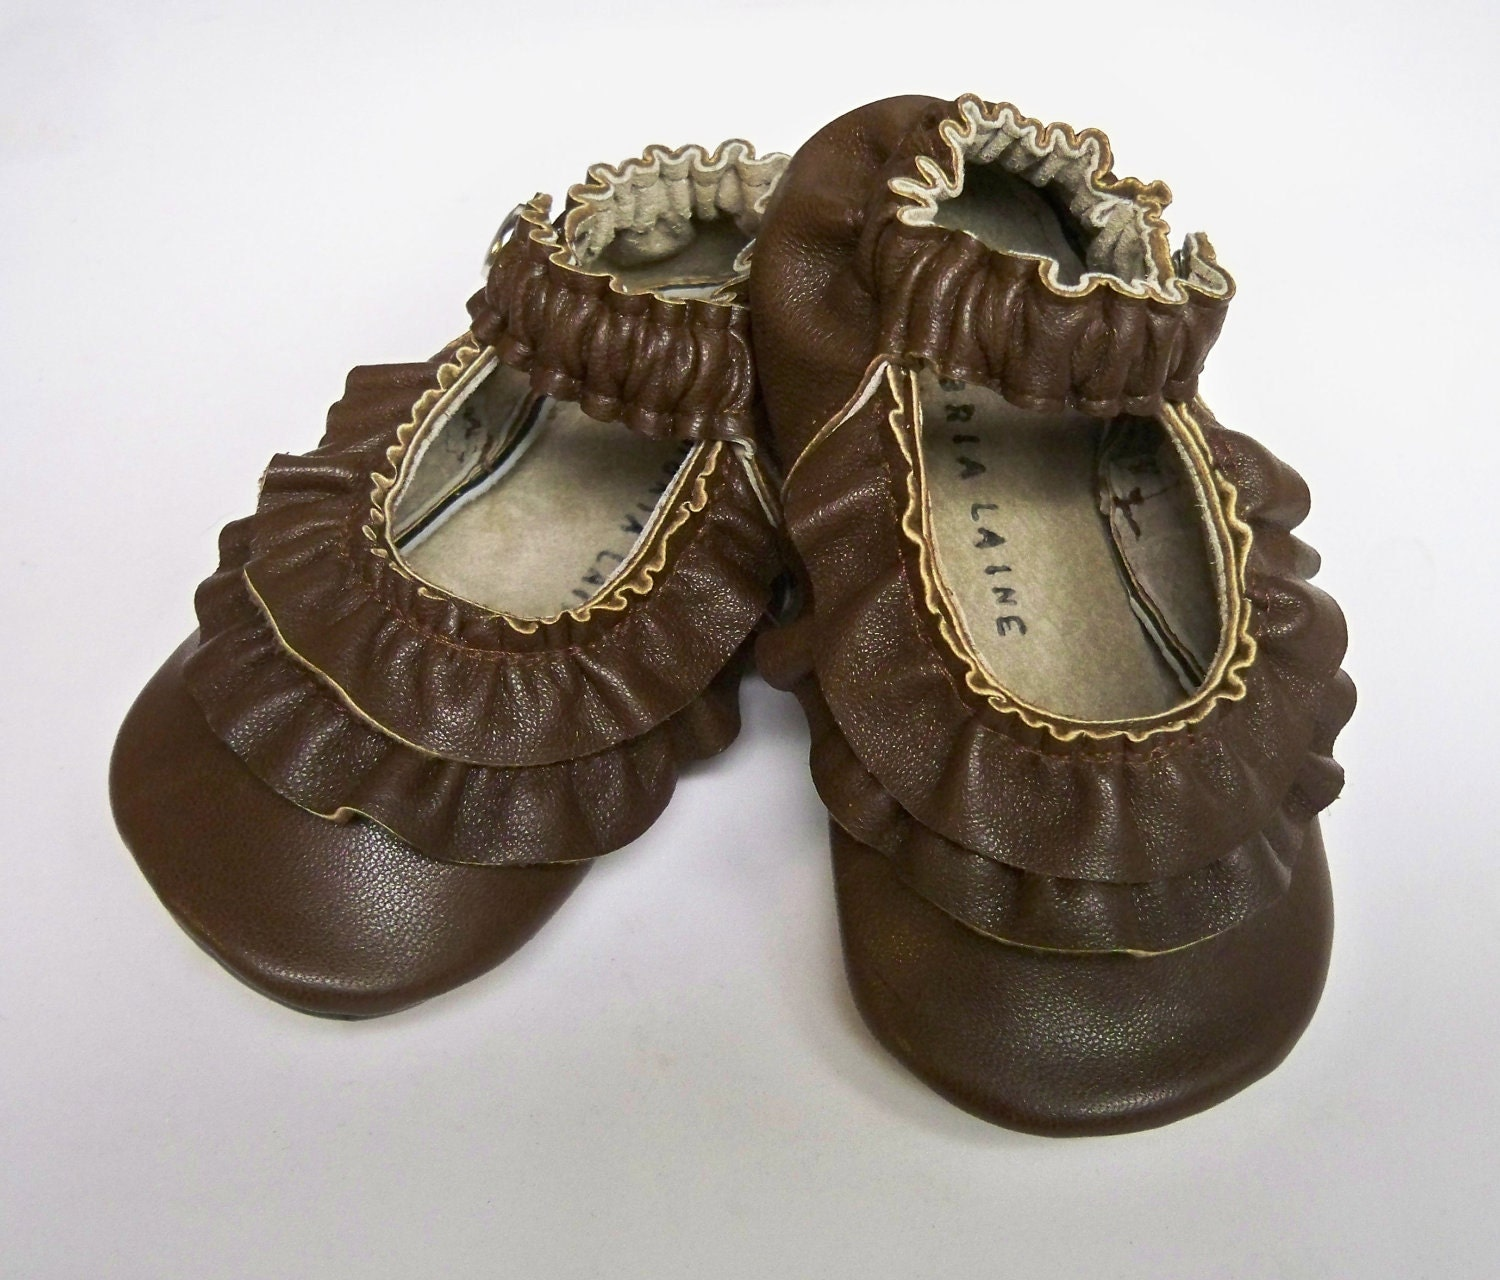 Brown Leather Double Ruffle Mary Jane soft sole shoes - Custom sewn - 0 3 6 12 18 24 months